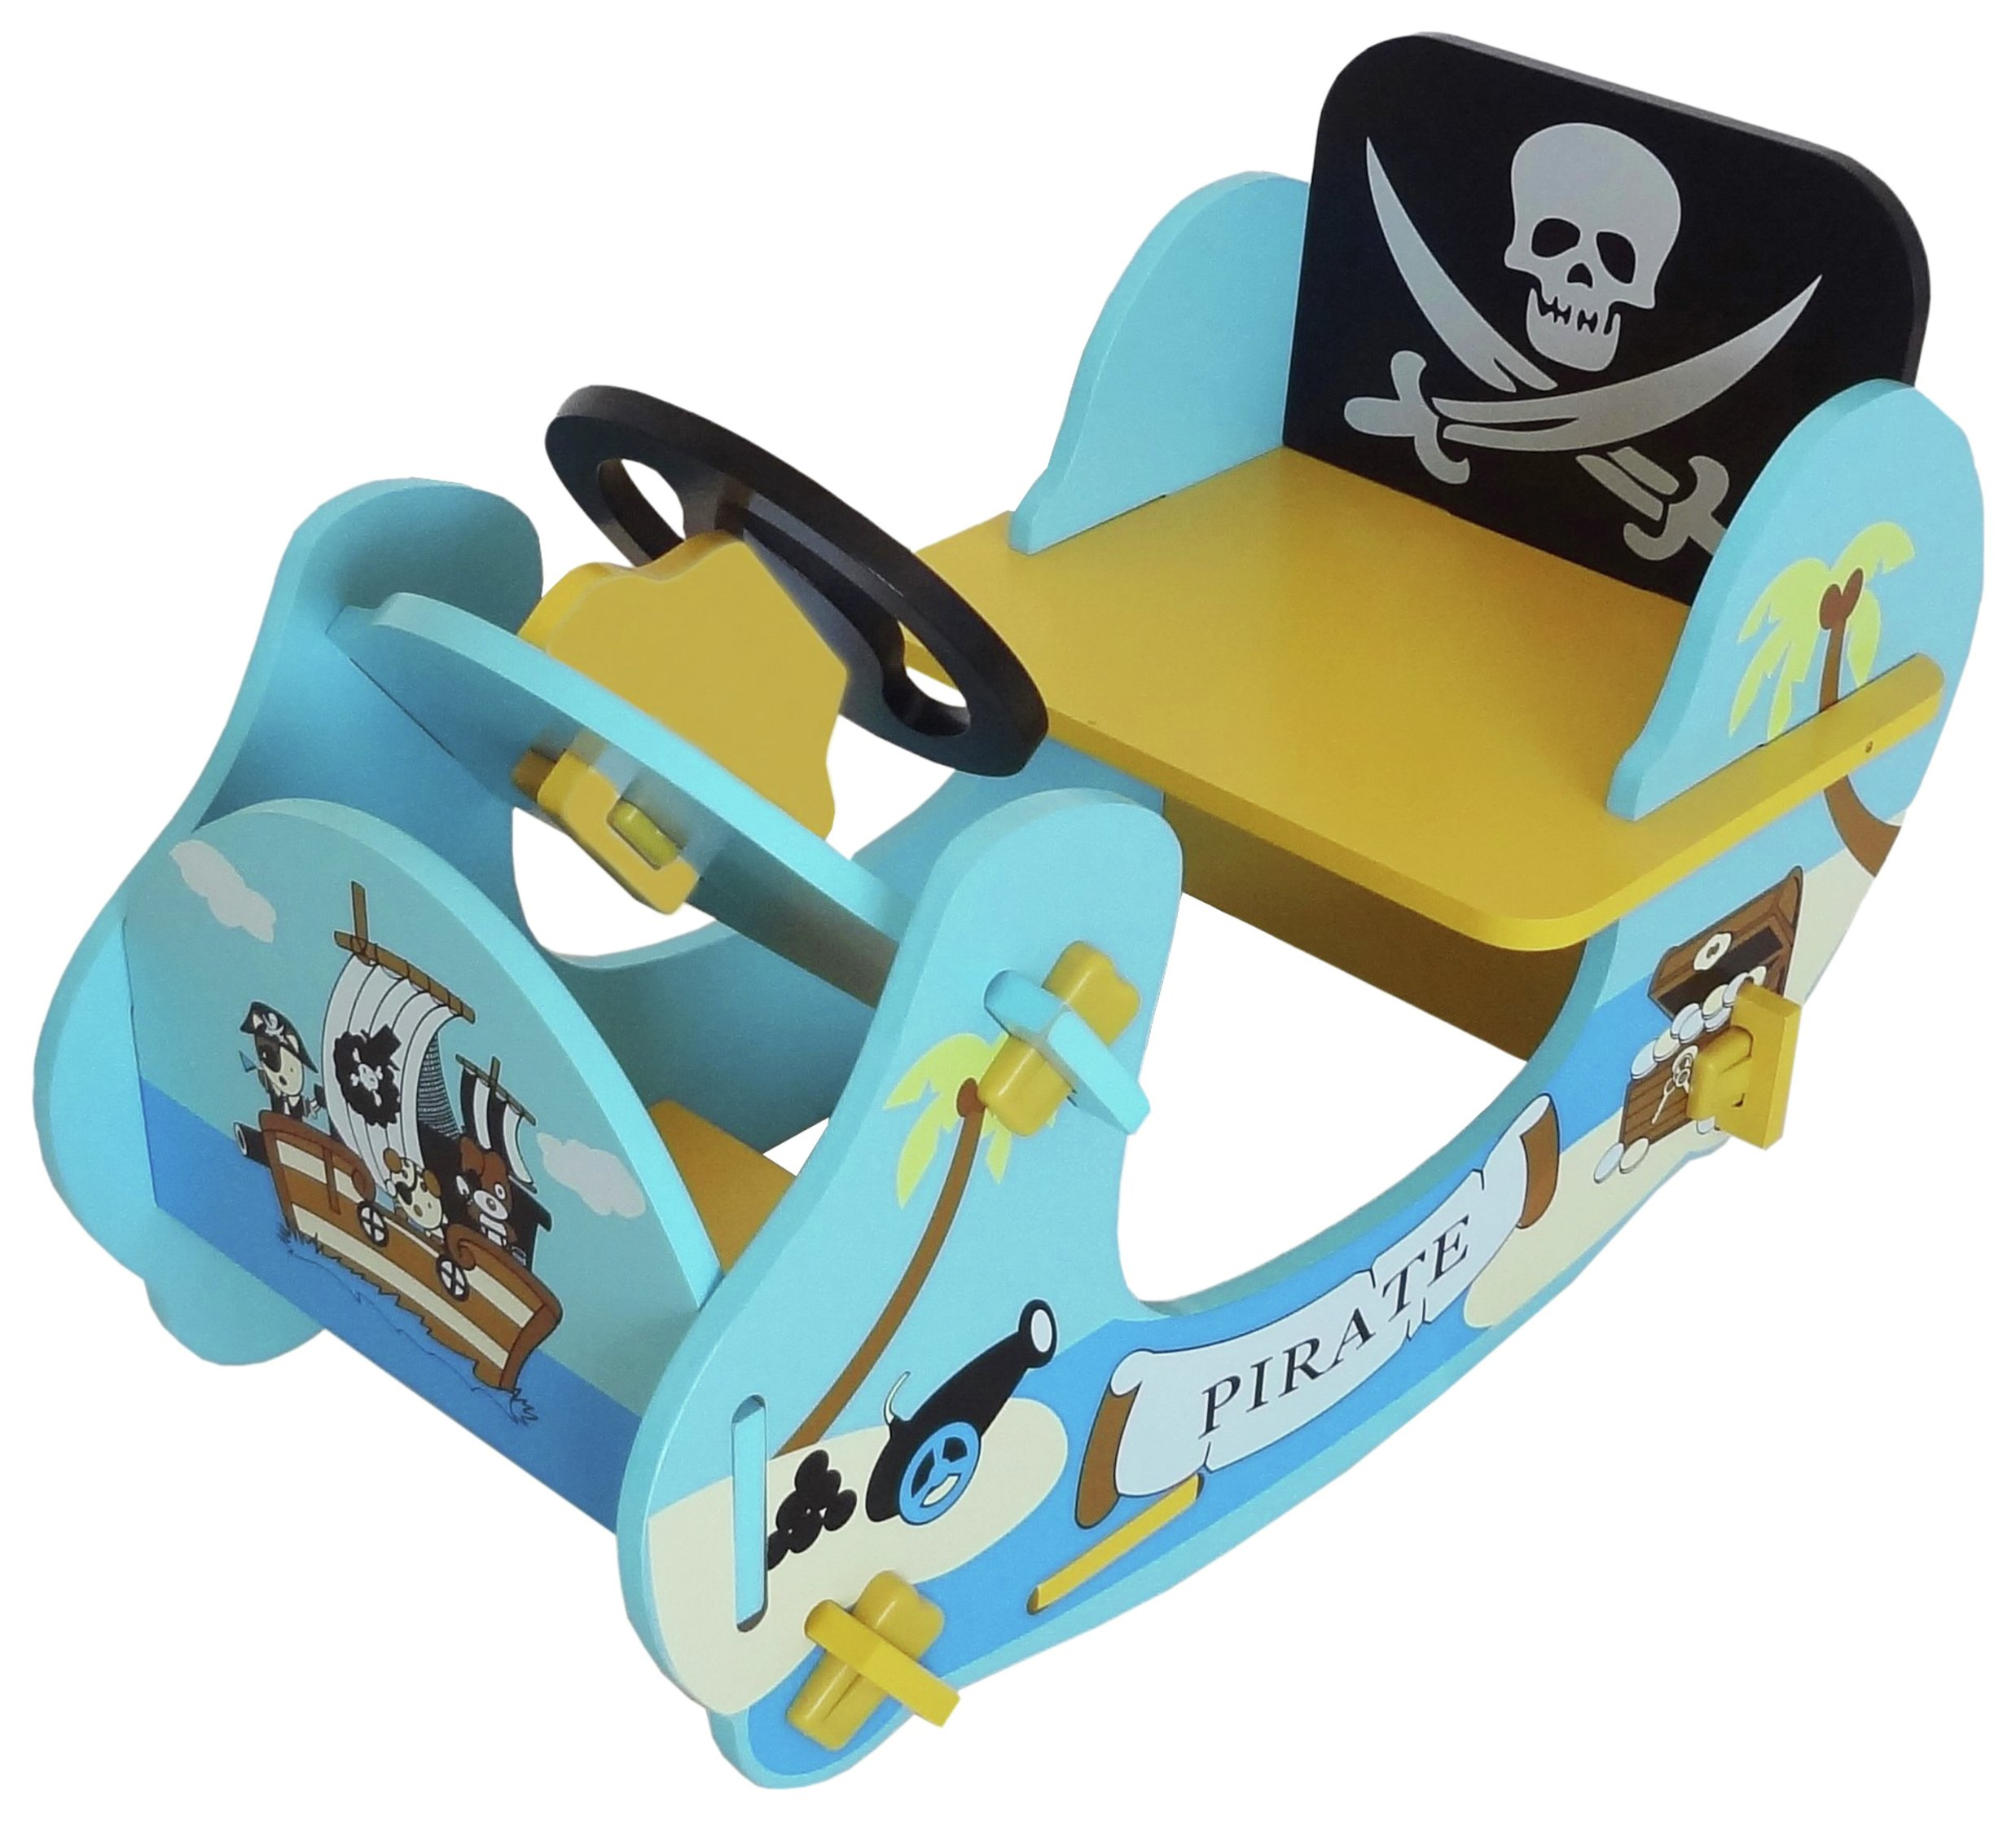 Image of Kiddi Style Pirate Rocking Boat - Blue